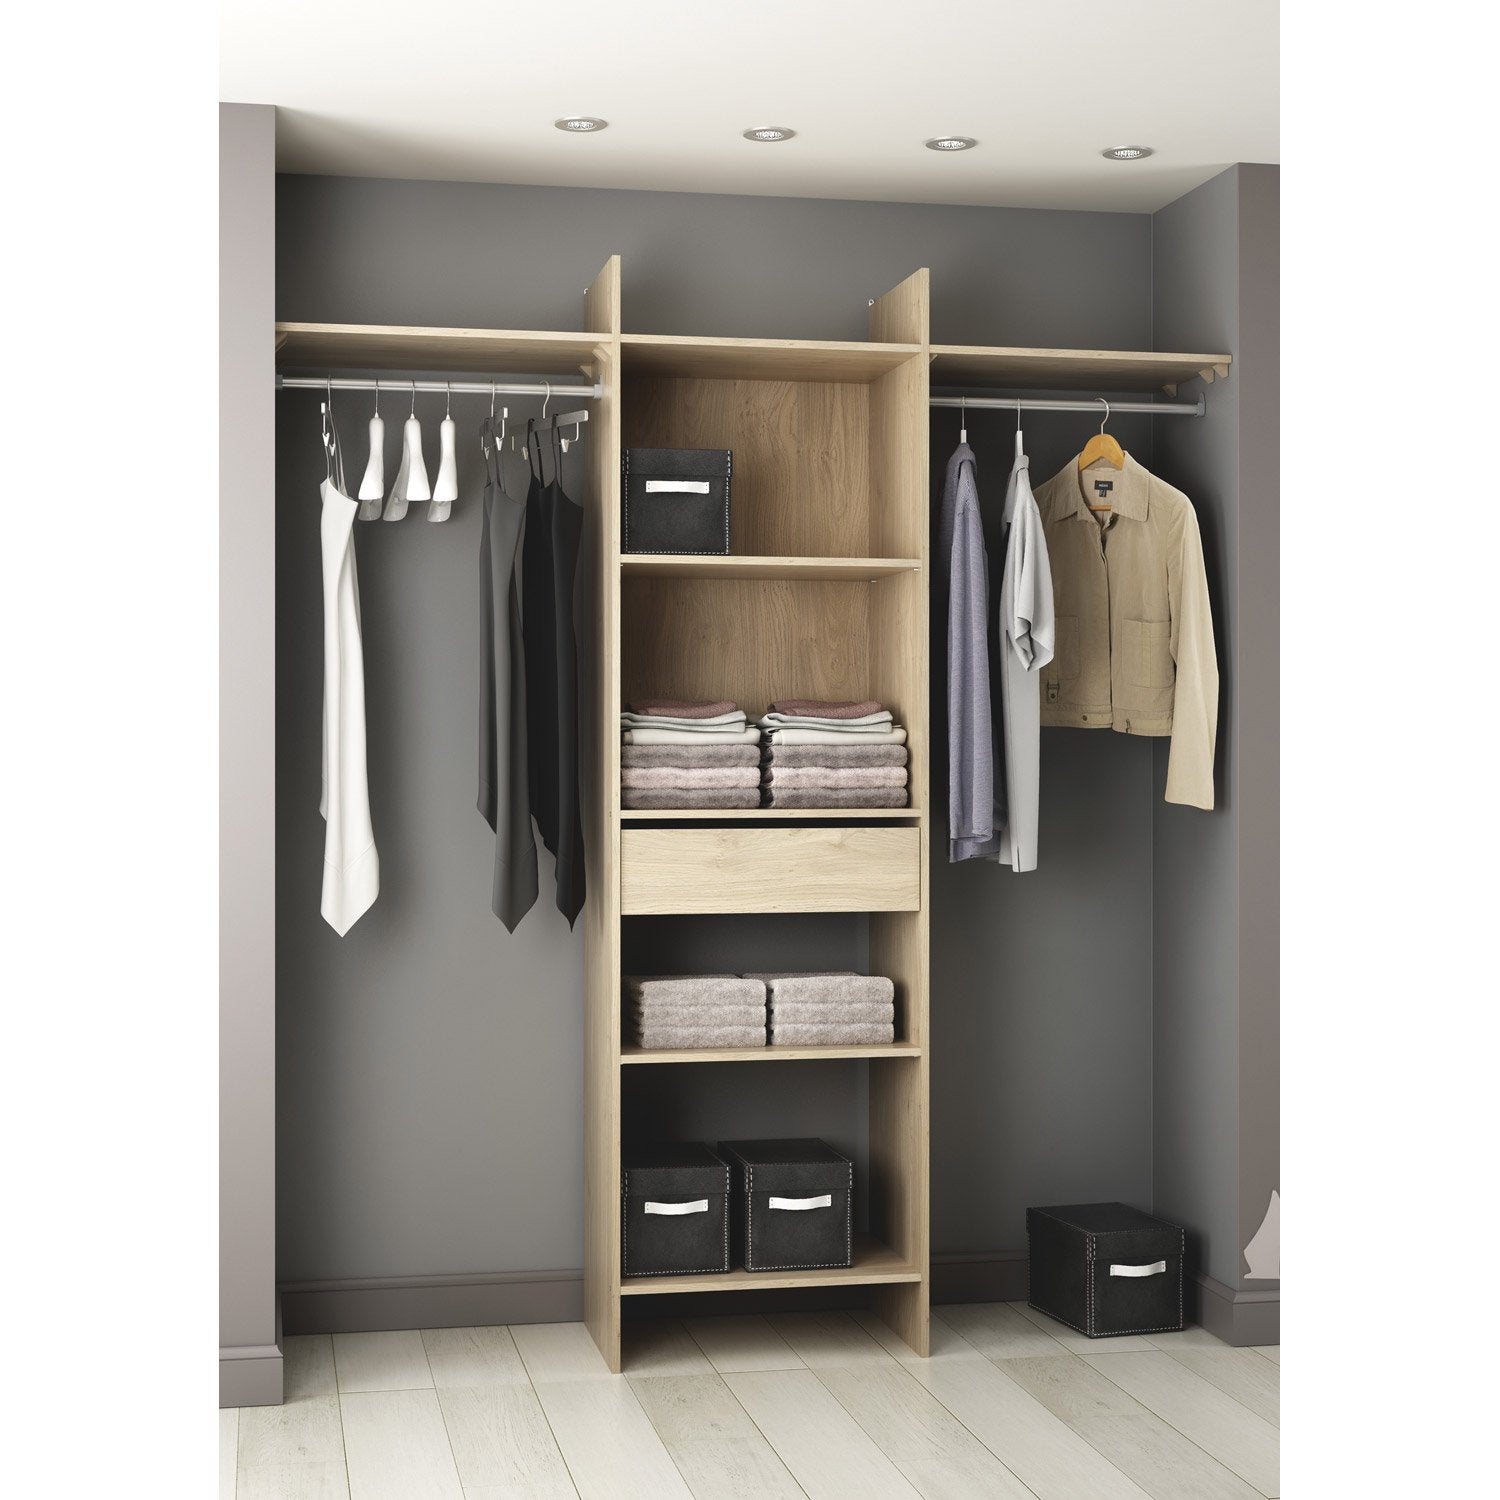 kit dressing colonne penderie tiroirs modul 39 star d cor ch ne l180xh203xp40cm leroy merlin. Black Bedroom Furniture Sets. Home Design Ideas